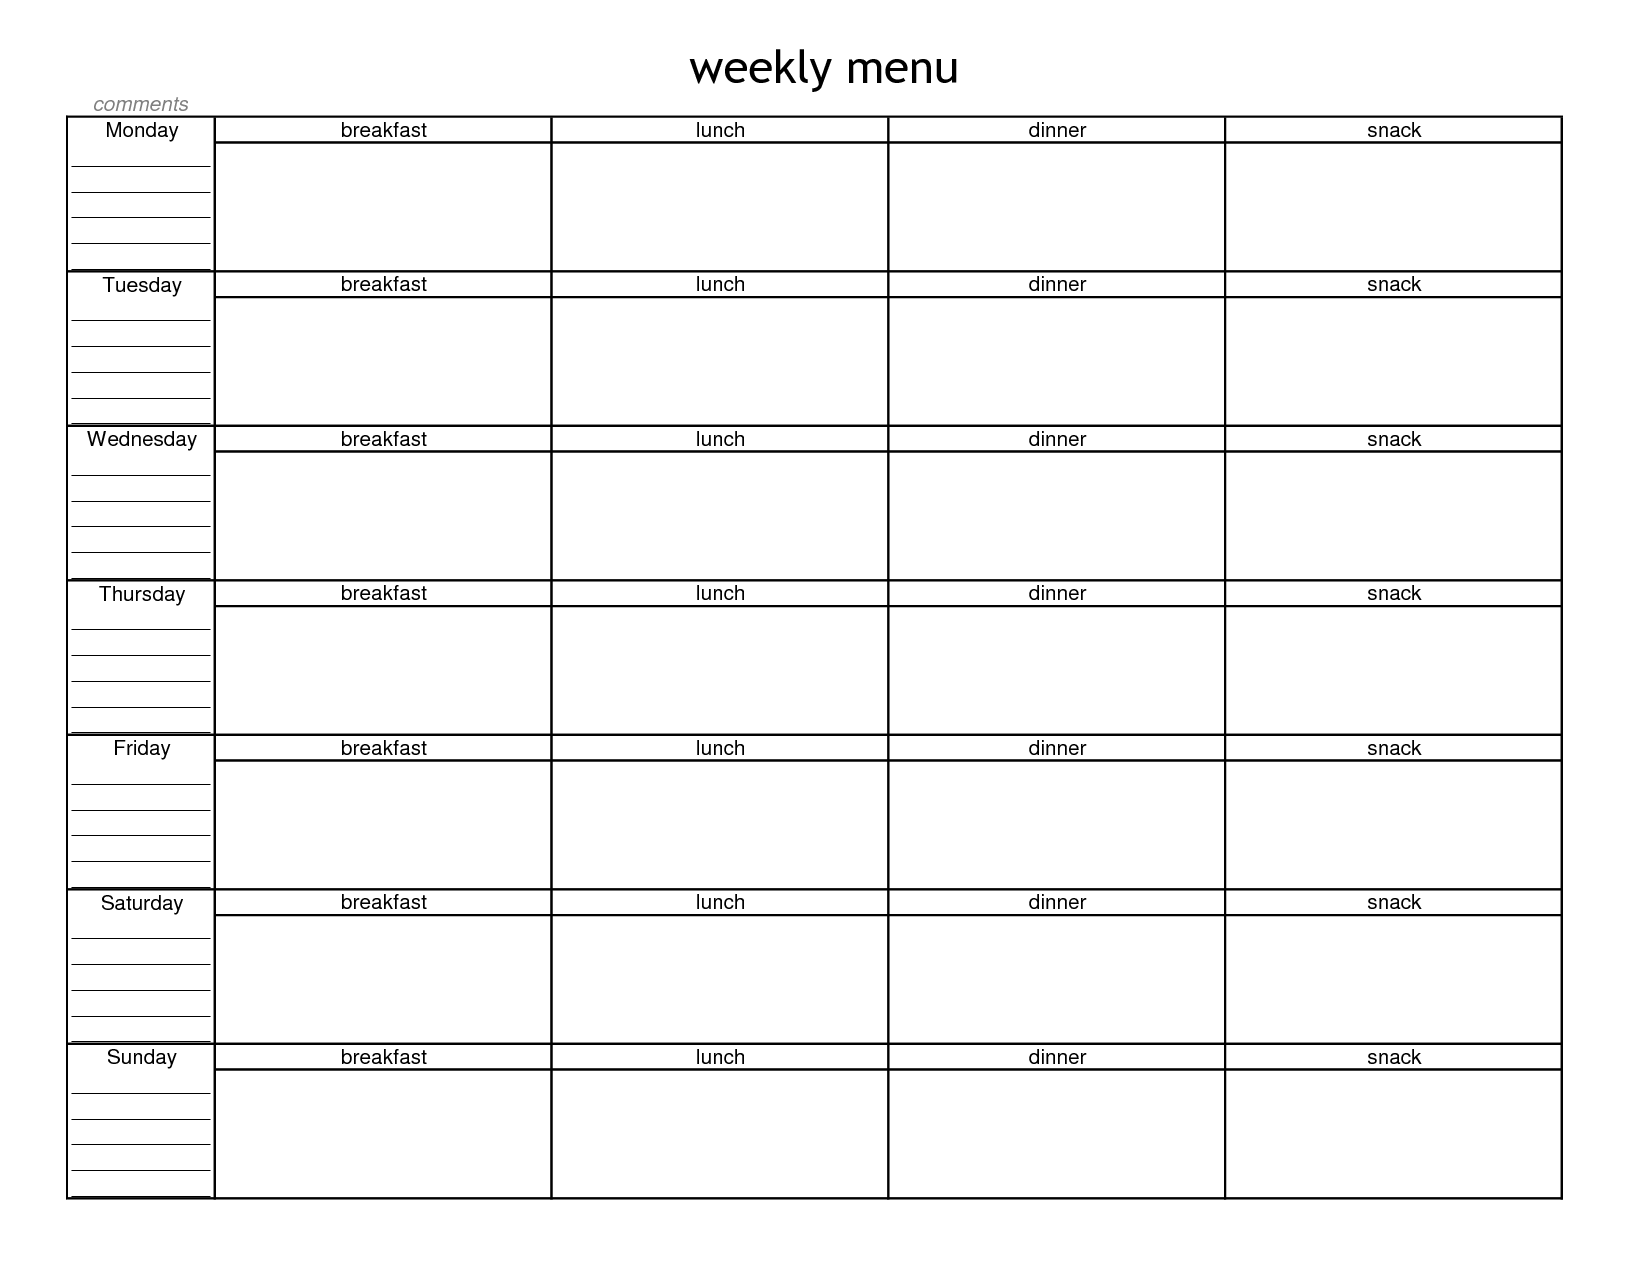 photograph regarding Blank Printable Menu named Blank Weekly Menu Planner Template Menu Building within just 2019